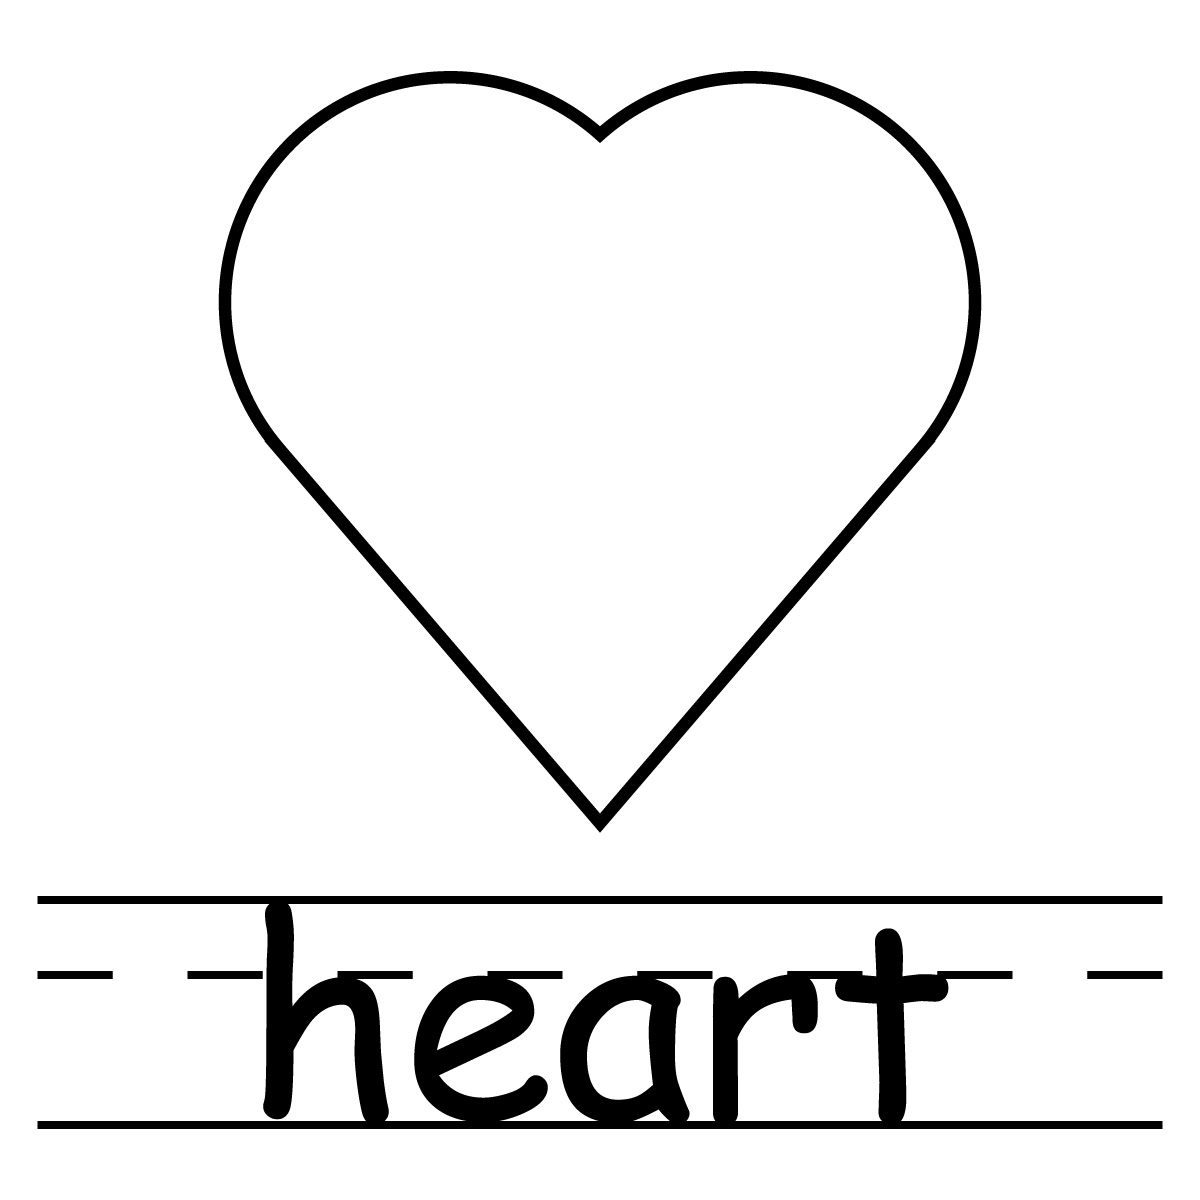 Free Heart Shapes Pictures Download Free Clip Art Free Clip Art On Clipart Library